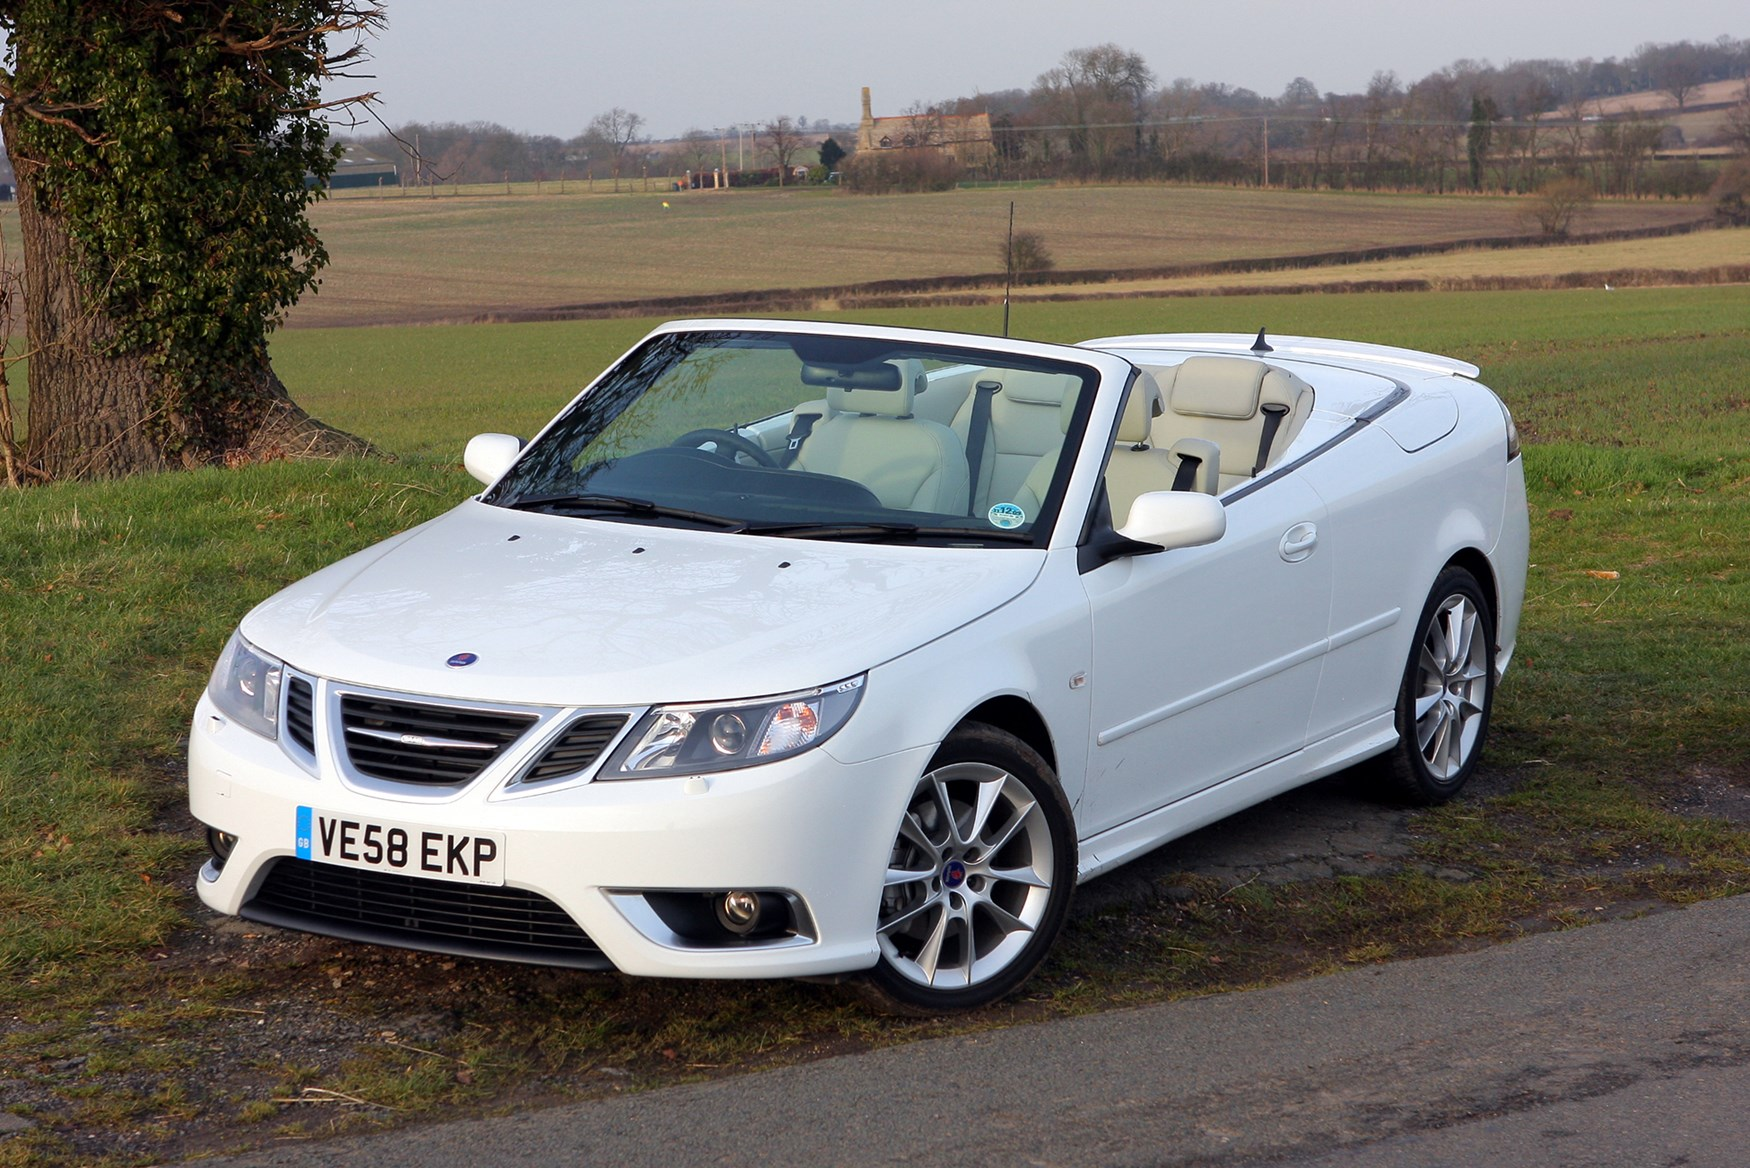 saab 9 3 convertible 2003 2011 features equipment and next rivals 3 previous buying selling